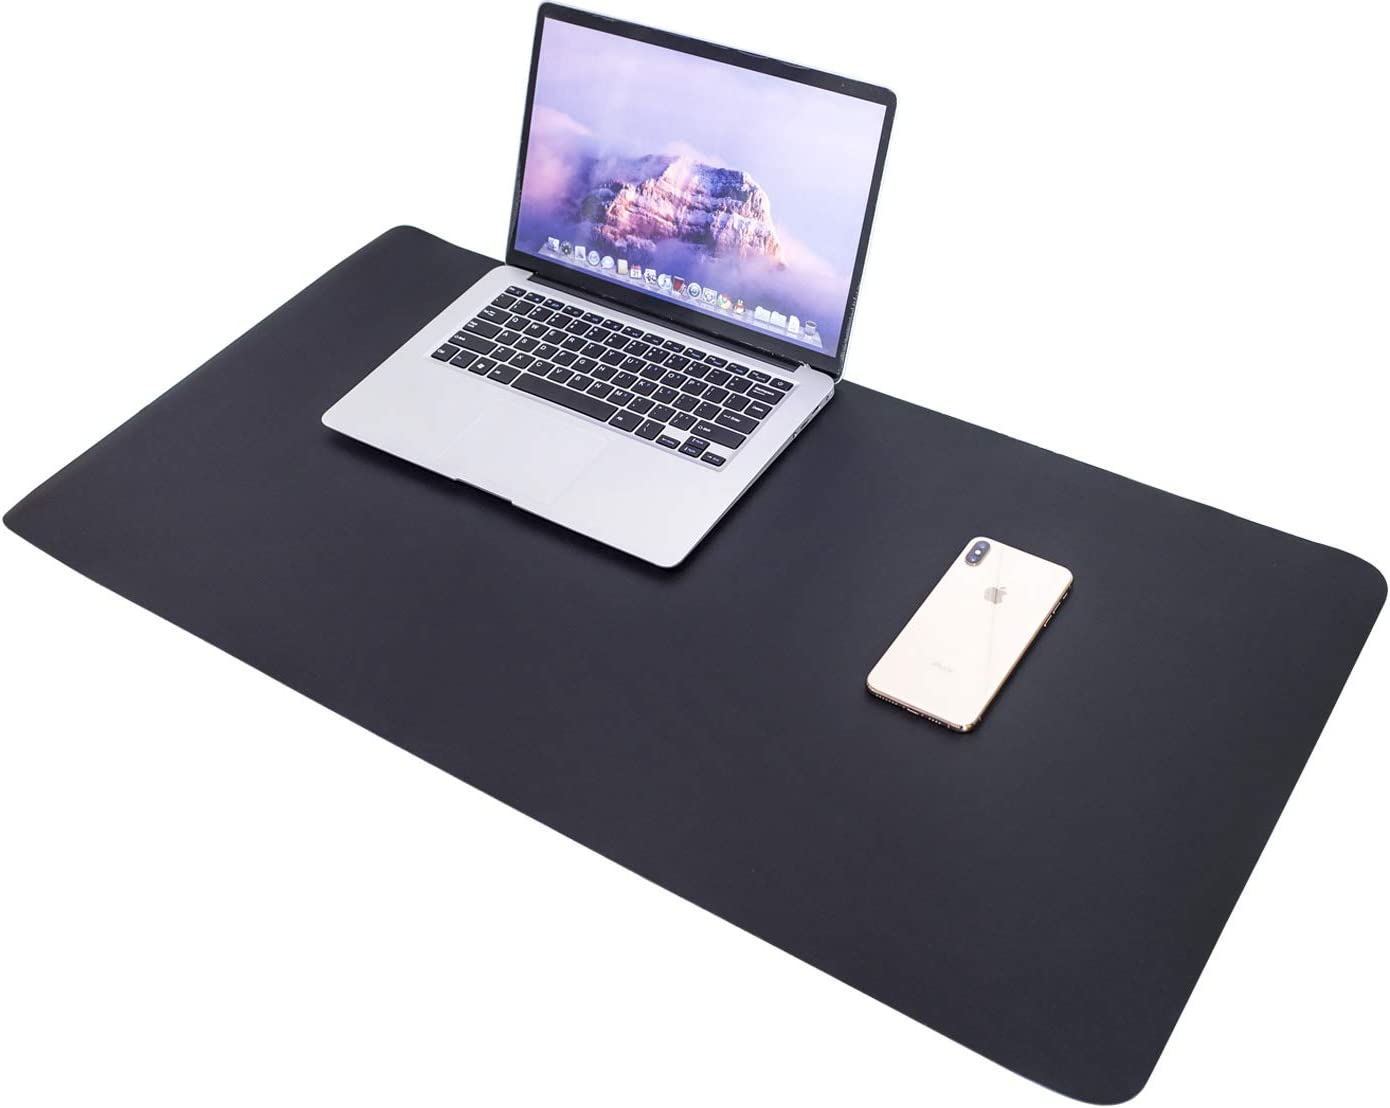 """Desk Mat Large Mouse Pad, Leather Desk Pad Home Office Supplies Decor for Women/Men, Desk Mats on Top of Desks Used As a Gaming Mouse Pad/Makeup Desk Pad/Coffee Table Décor (35.4""""x17"""", Black)"""